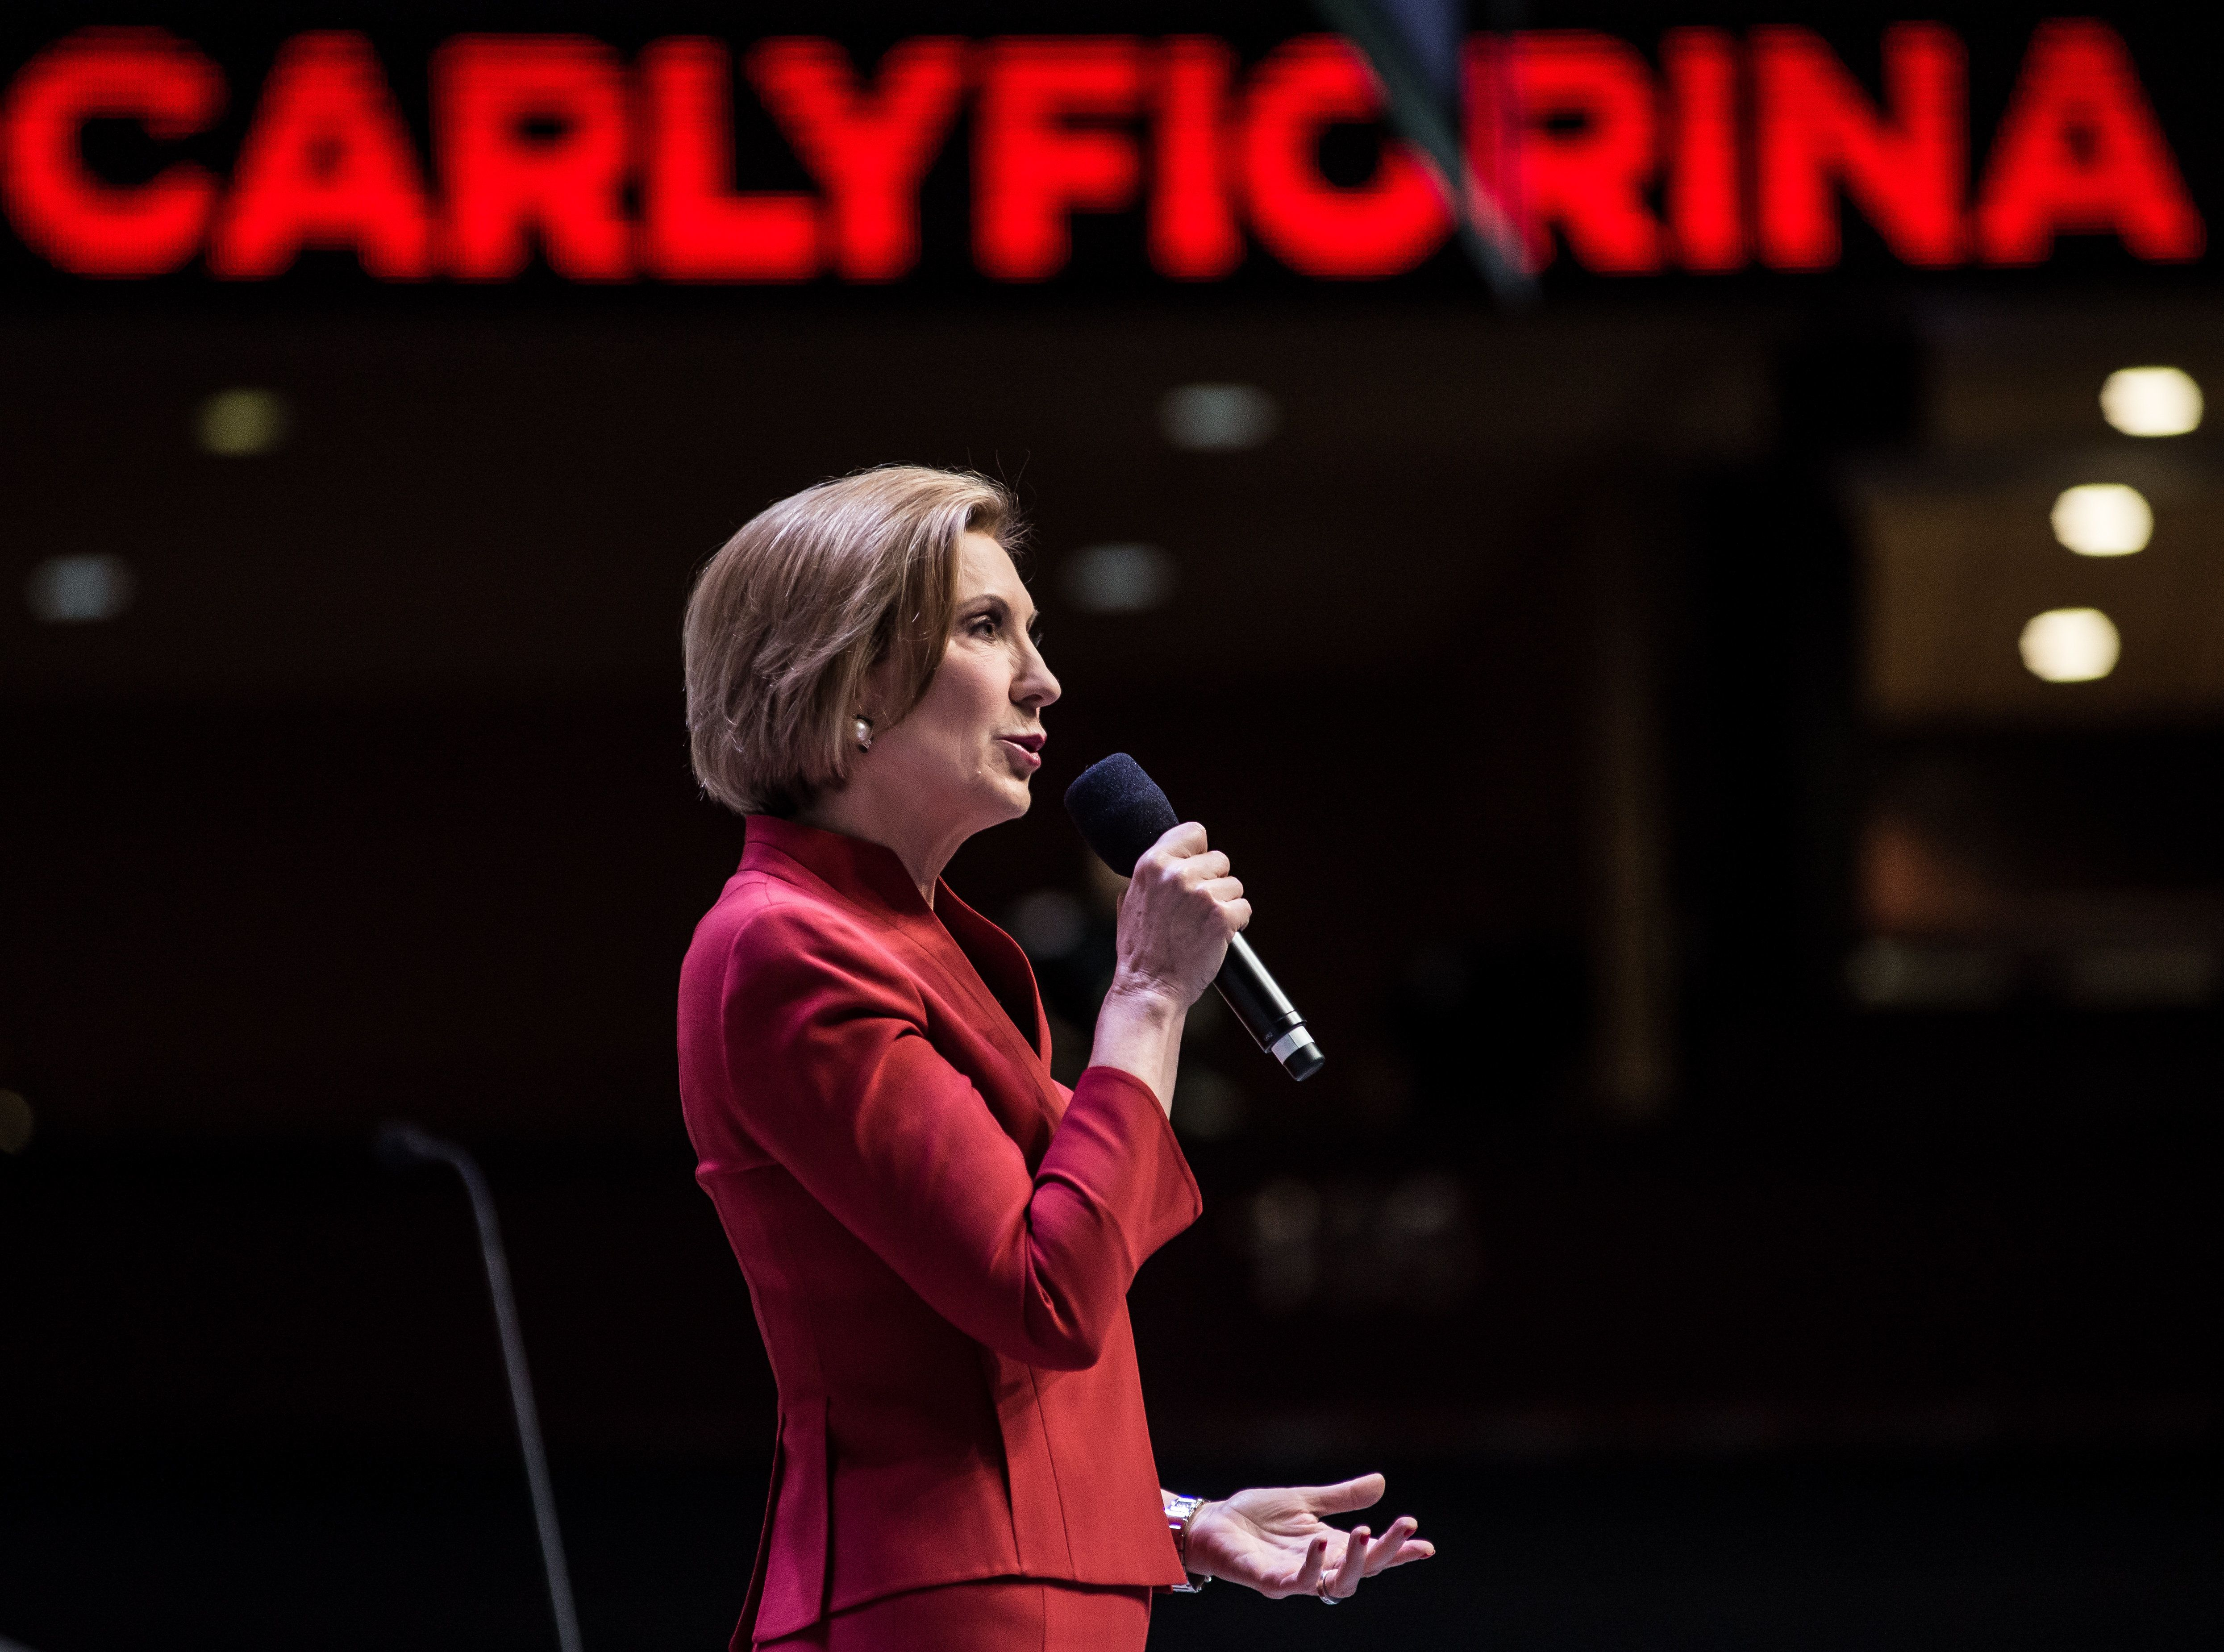 GREENVILLE, SC - SEPTEMBER 18:  Republican presidential candidate Carly Fiorina speaks to voters at the Heritage Action Presidential Candidate Forum September 18, 2015 in Greenville, South Carolina. Ten republican candidates were each given 25 minutes to talk to the crowd at the Bons Secours Wellness Arena in the upstate of South Carolina. (Photo by Sean Rayford/Getty Images)